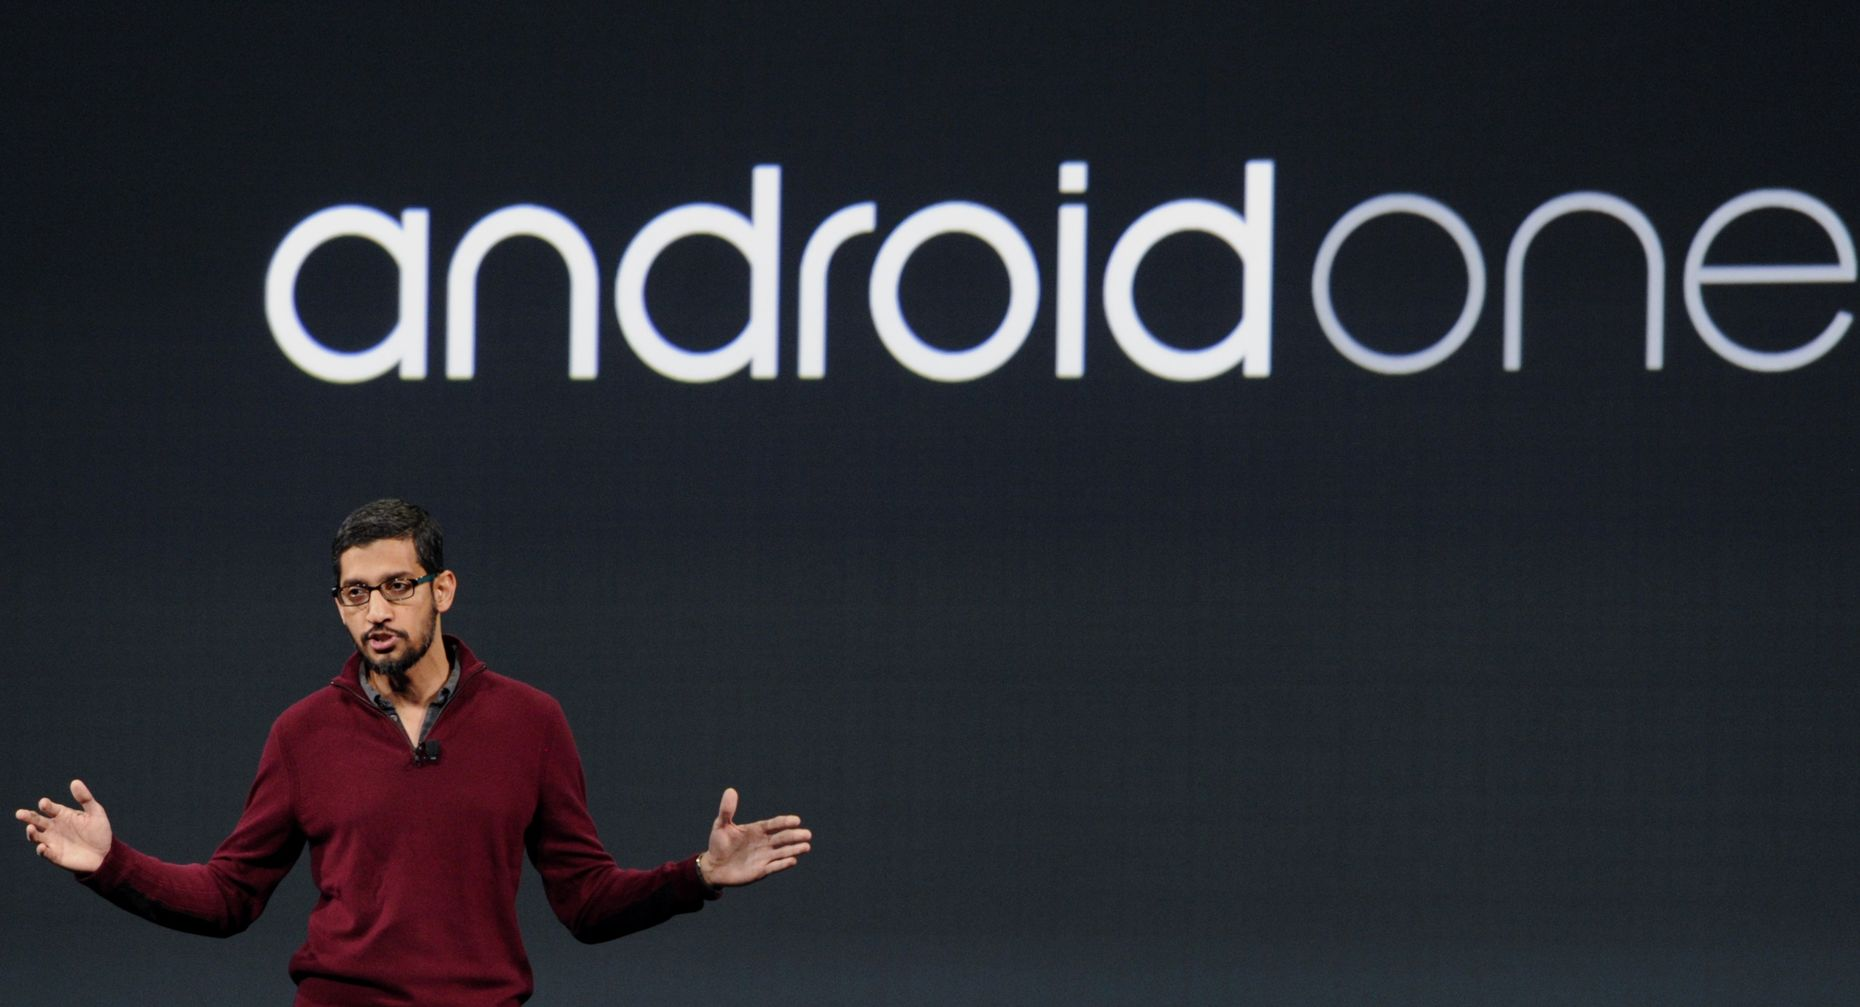 Google's Android chief, Sundar Pichai, introduces Android One in June. Photo by Bloomberg.